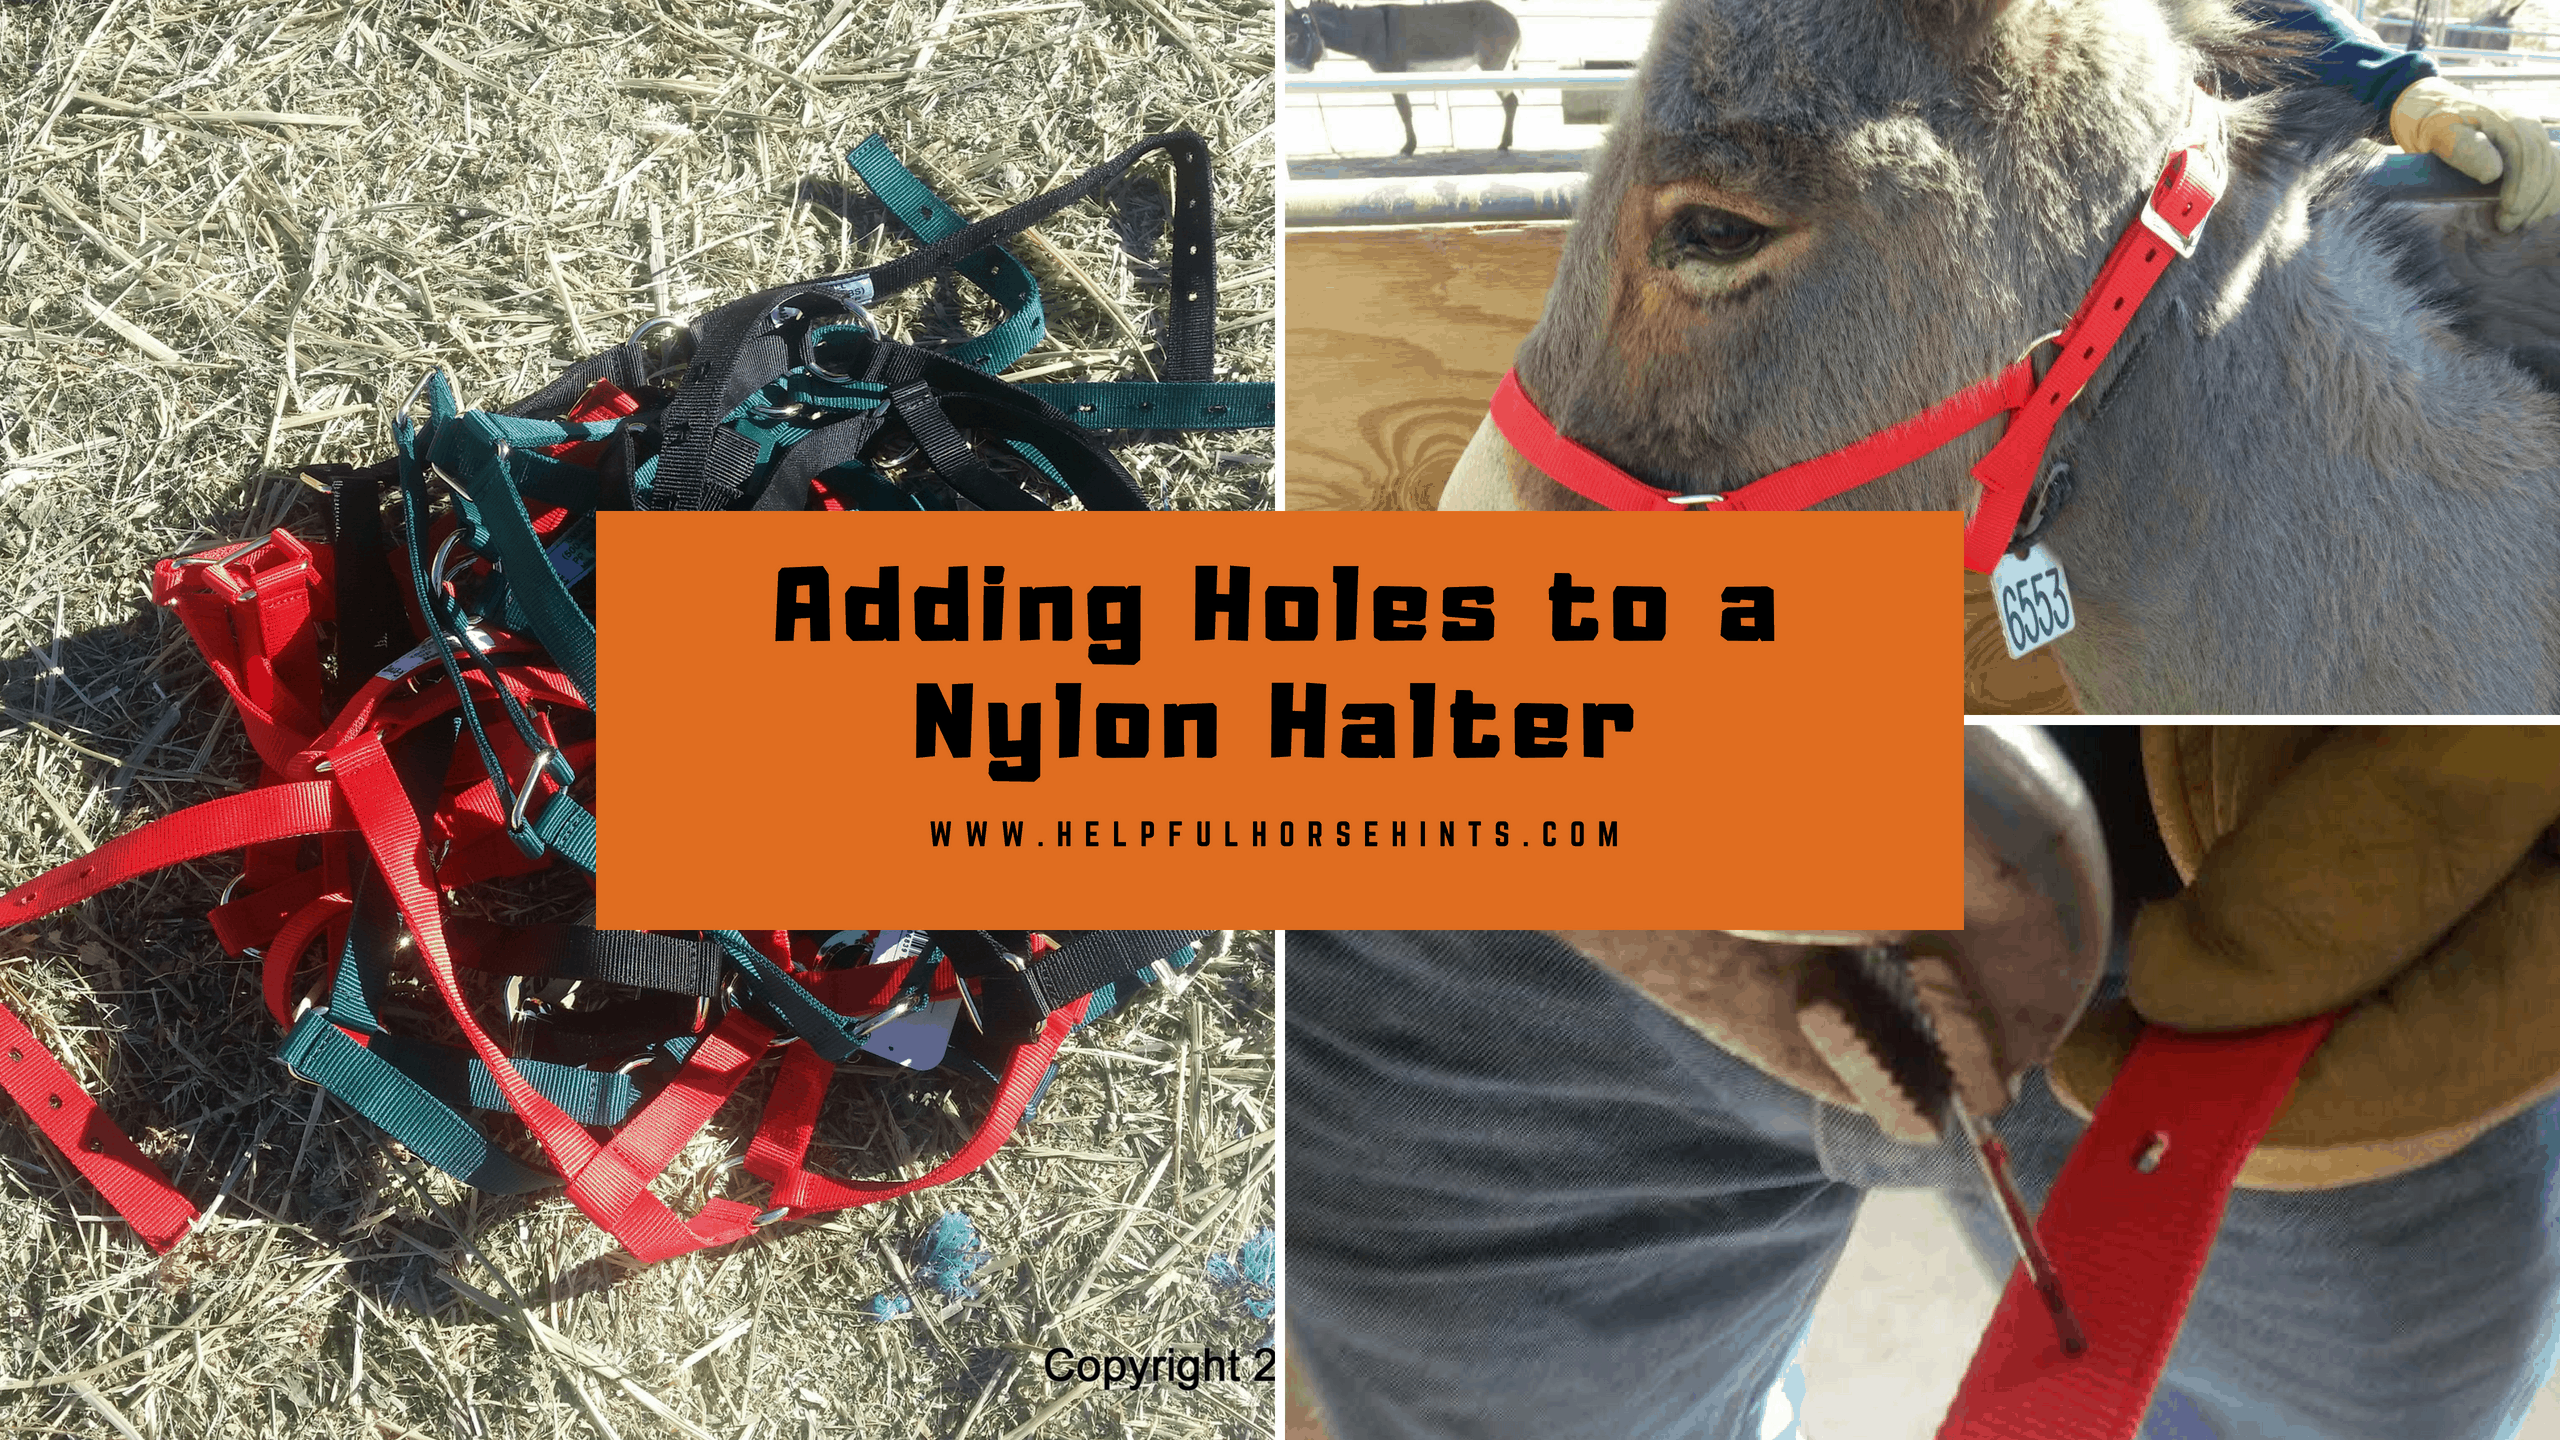 Adding Holes to a Nylon Halter